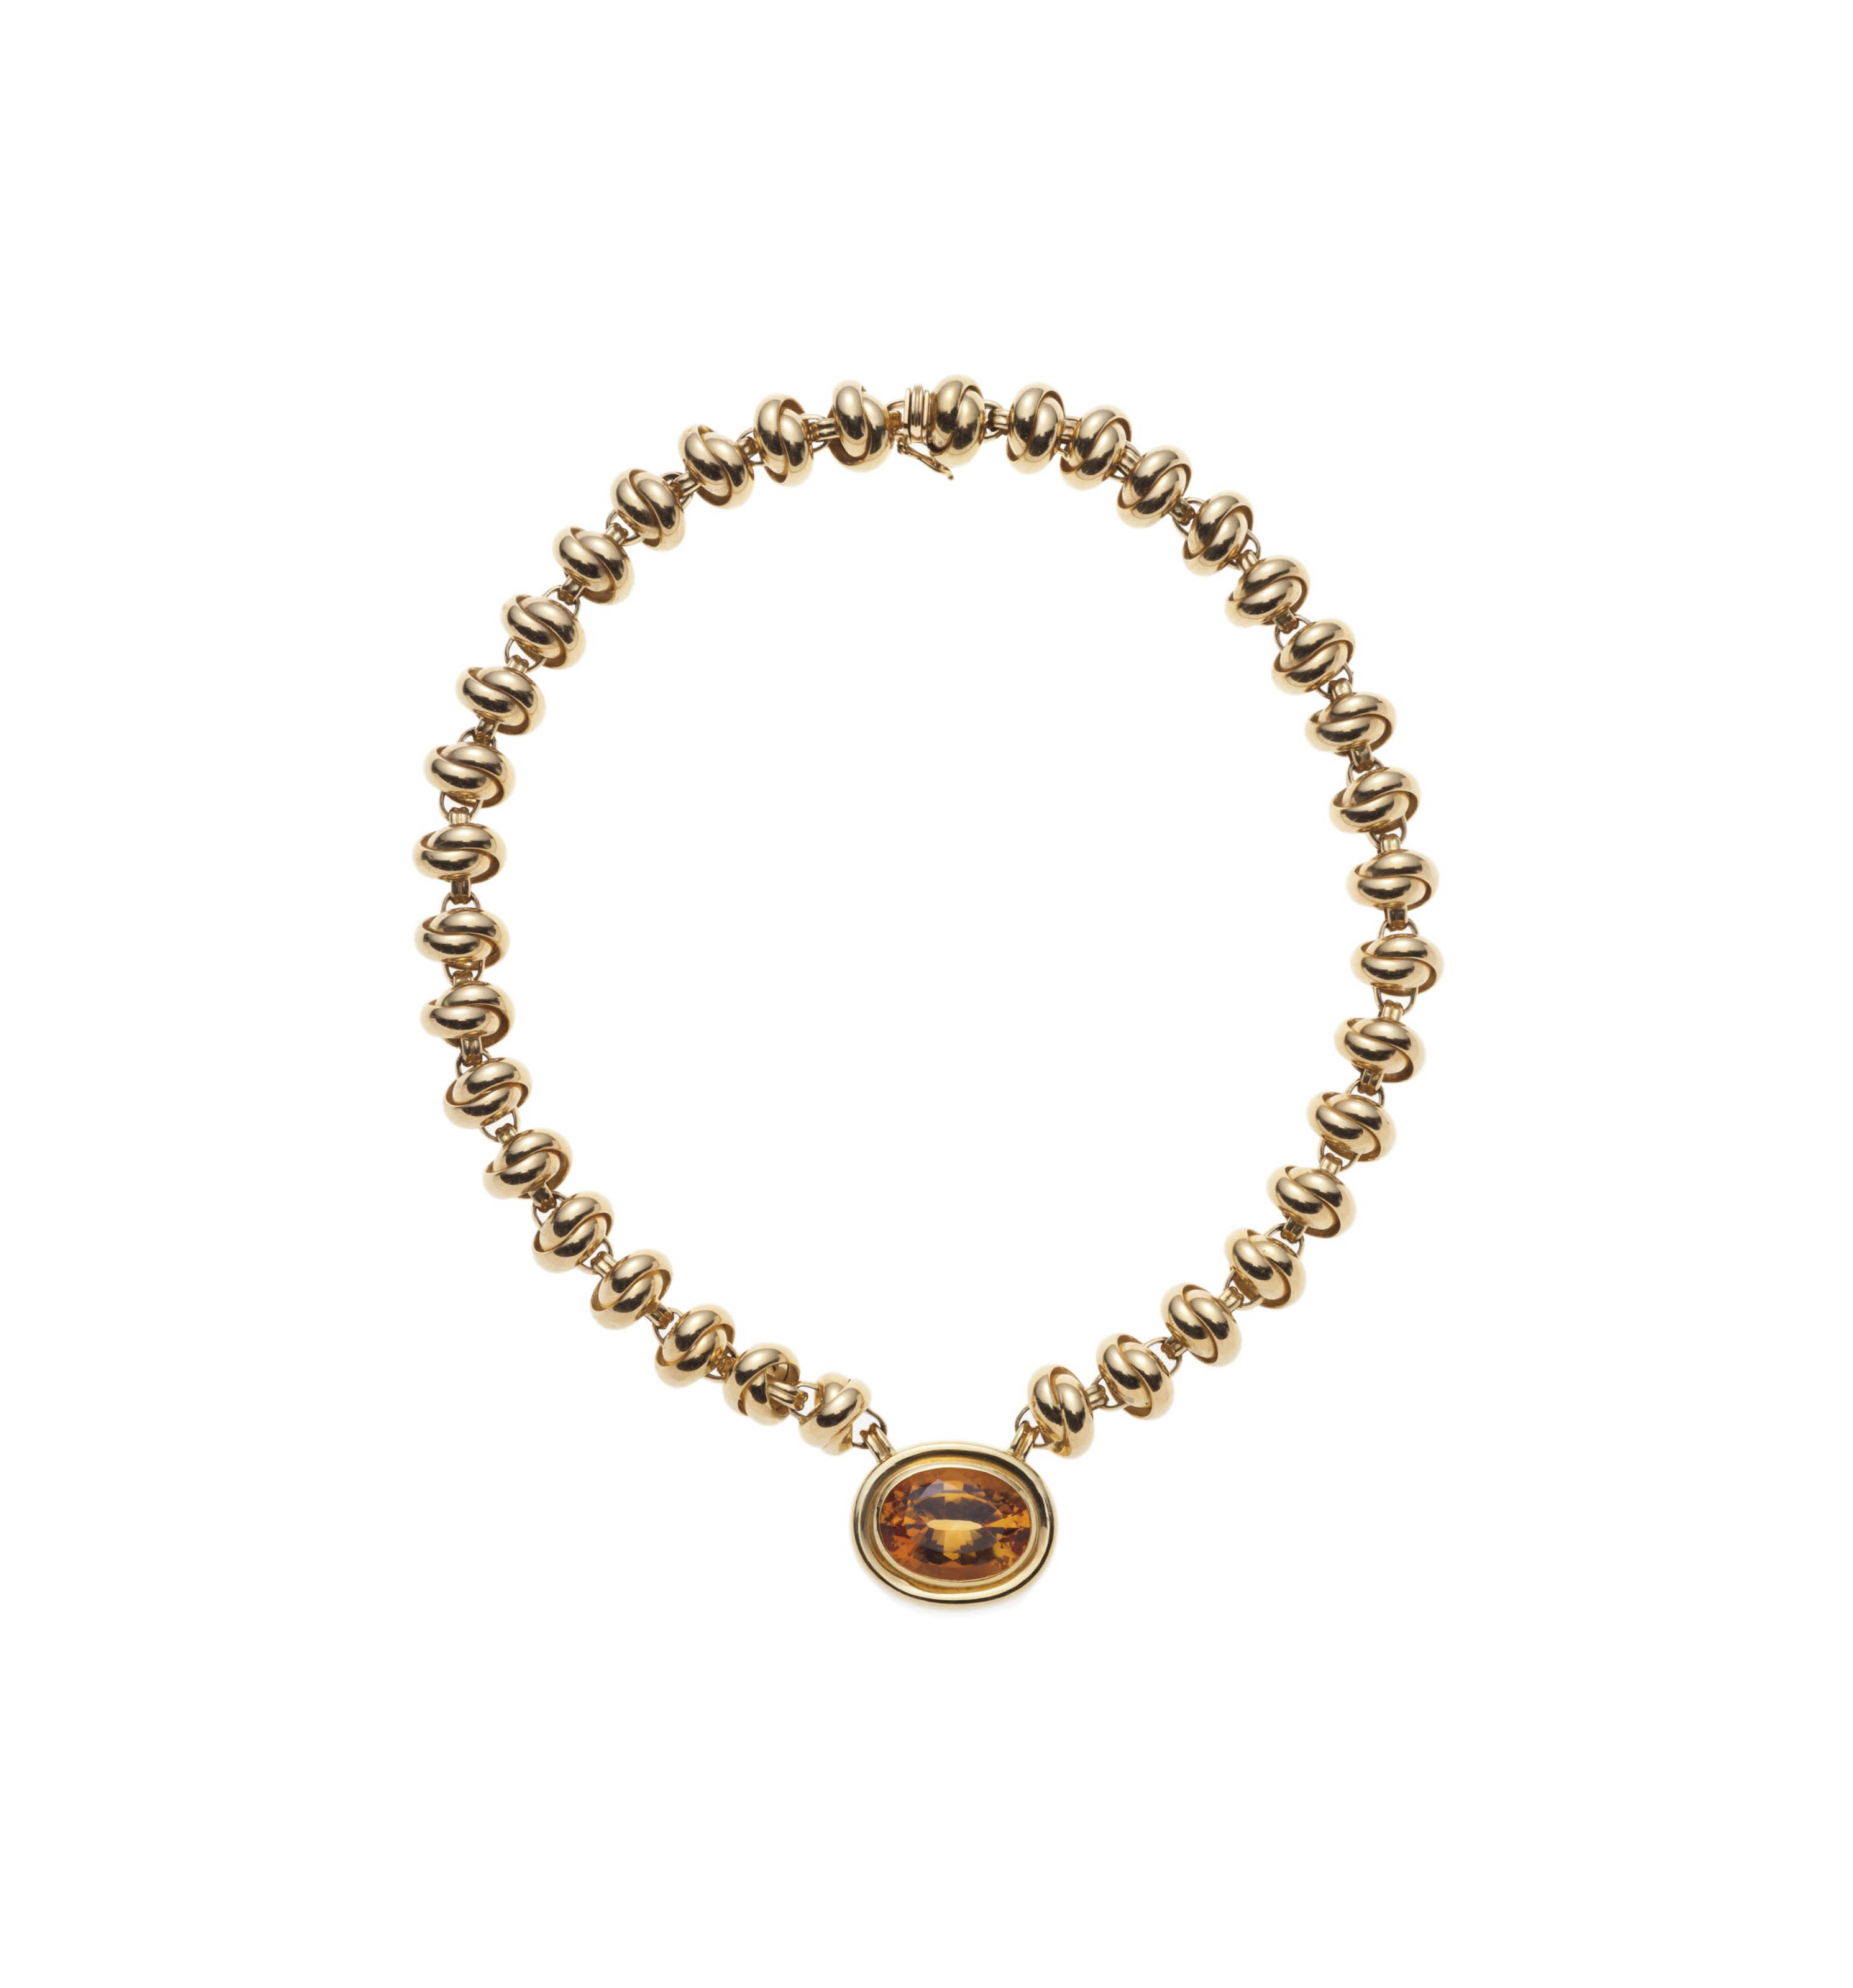 A CITRINE AND GOLD NECKLACE, BY PALOMA PICASSO, TIFFANY & CO.